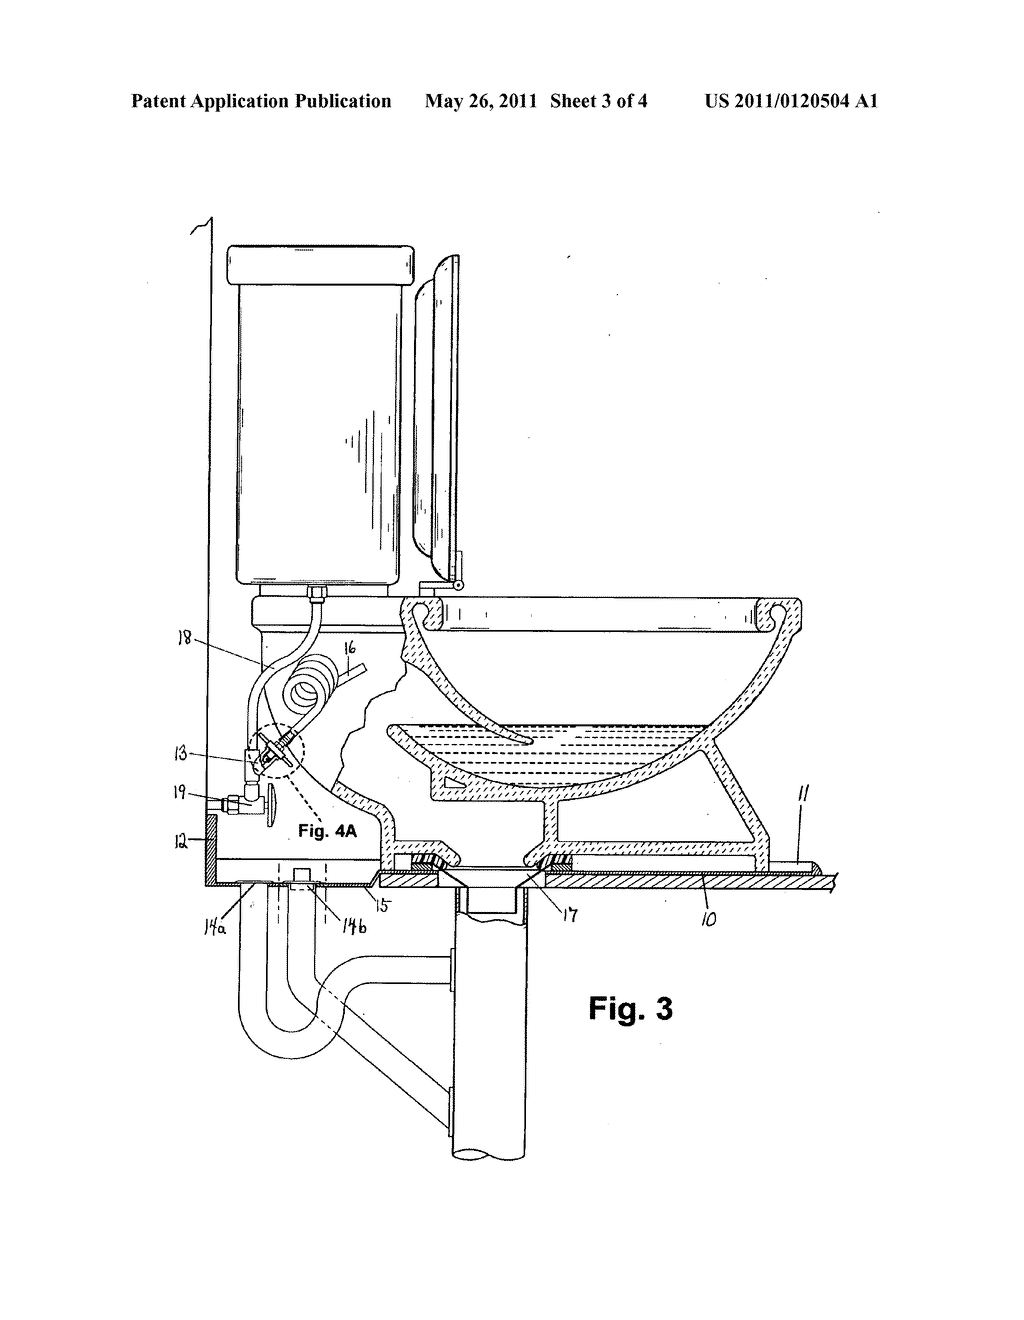 hight resolution of complete sanitary system for the toilet floor base collection and drain structure mechanical apparatuses and plumbing method diagram schematic